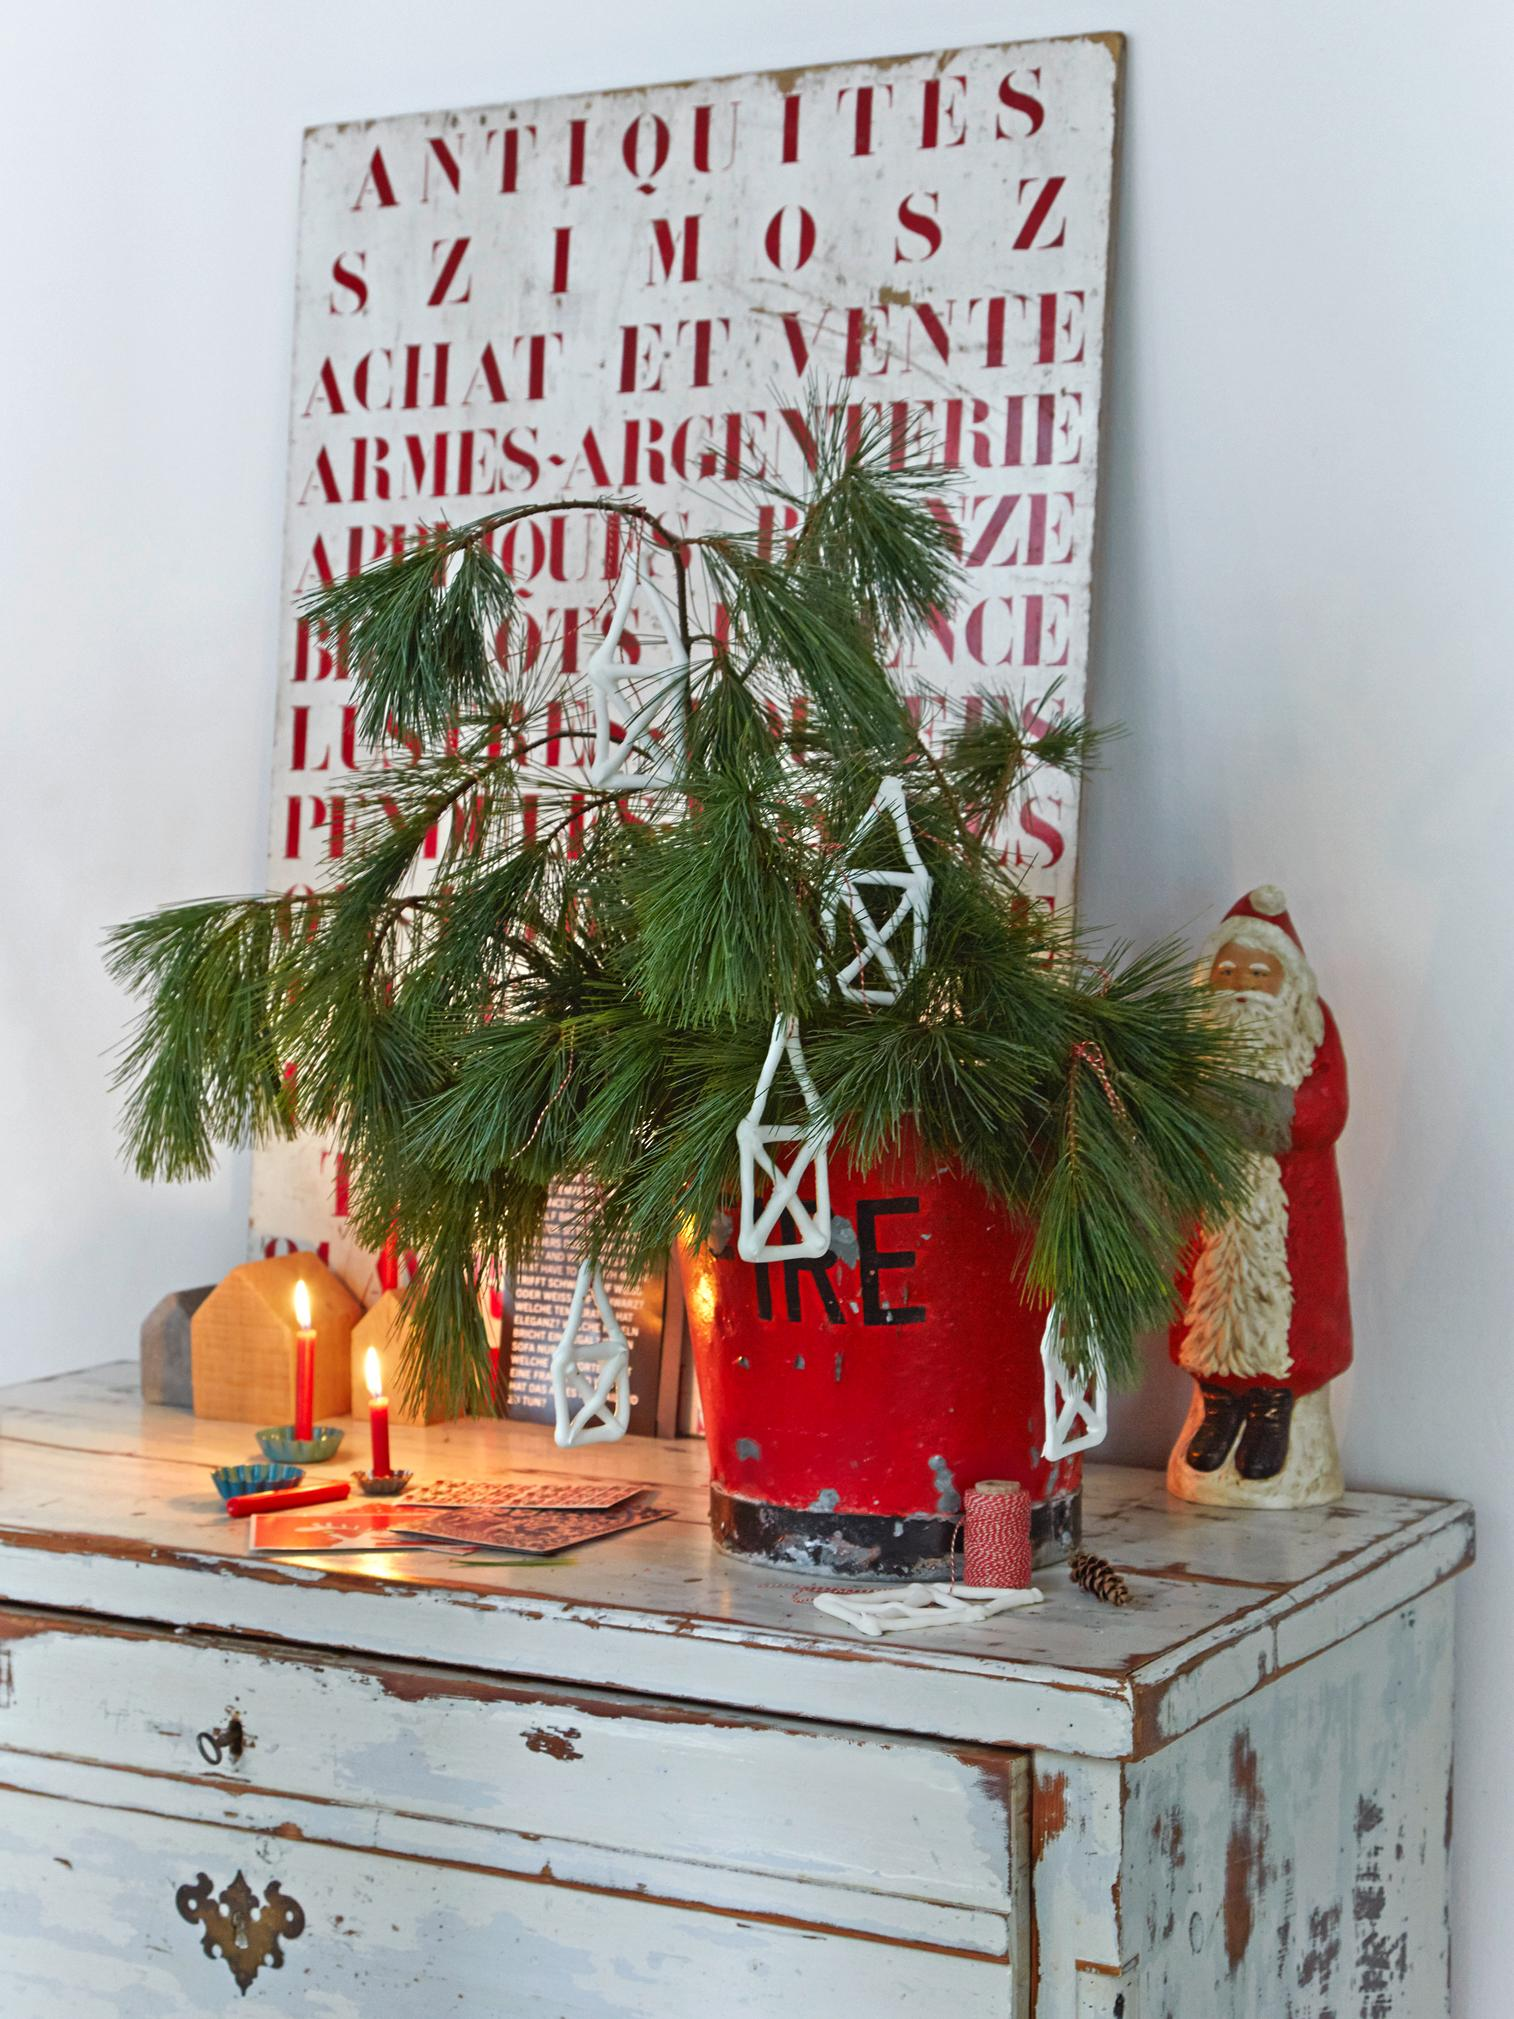 Sweet Home #bastelidee #diy #christbaumschmuck ©Living at Home